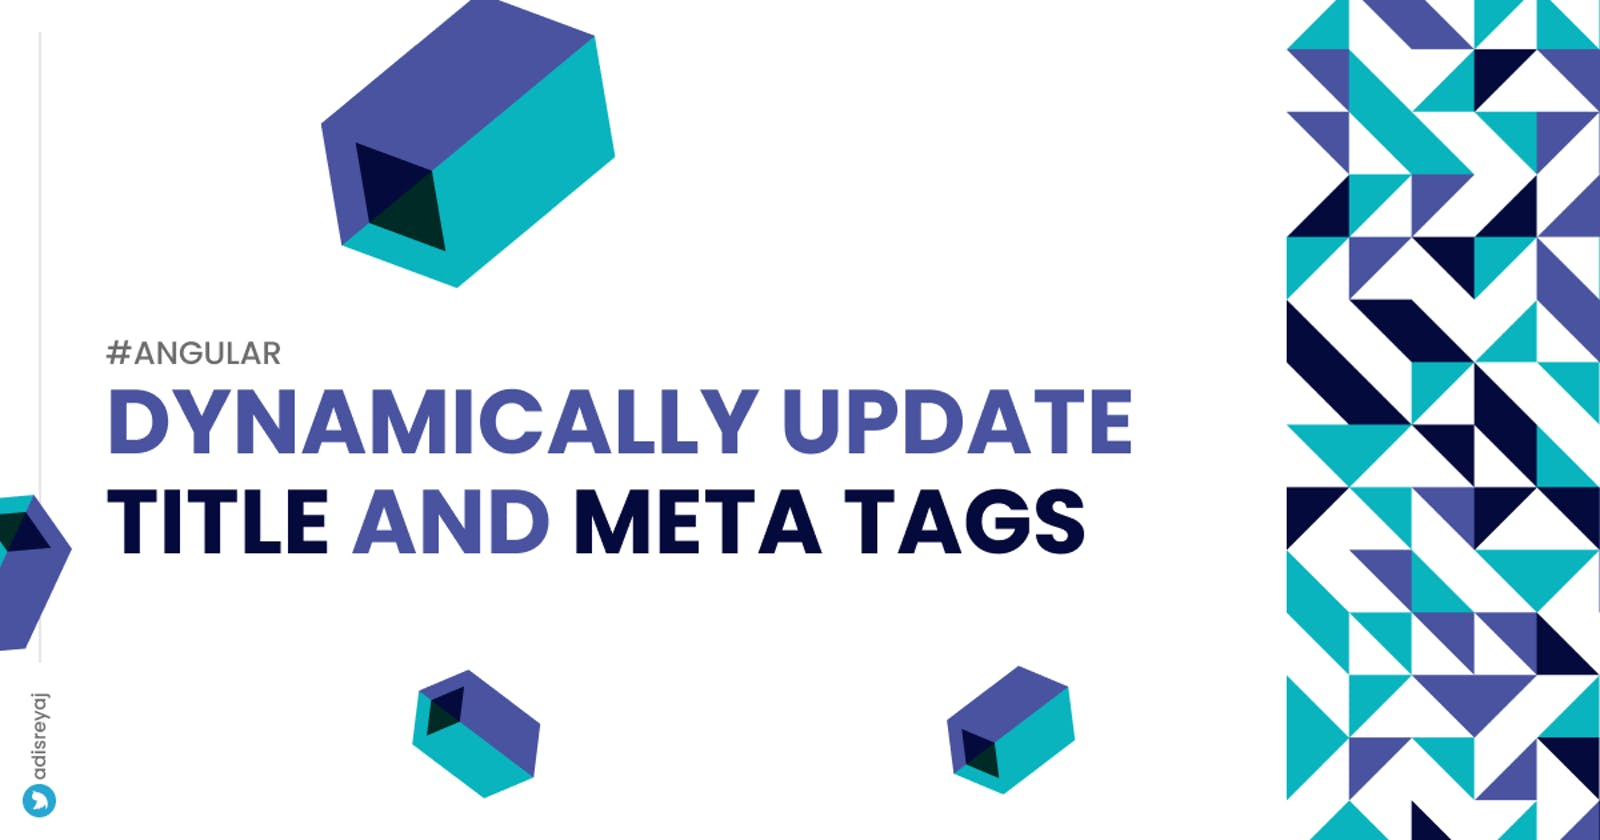 How I dynamically updated the Title and Meta Tags in my Angular application